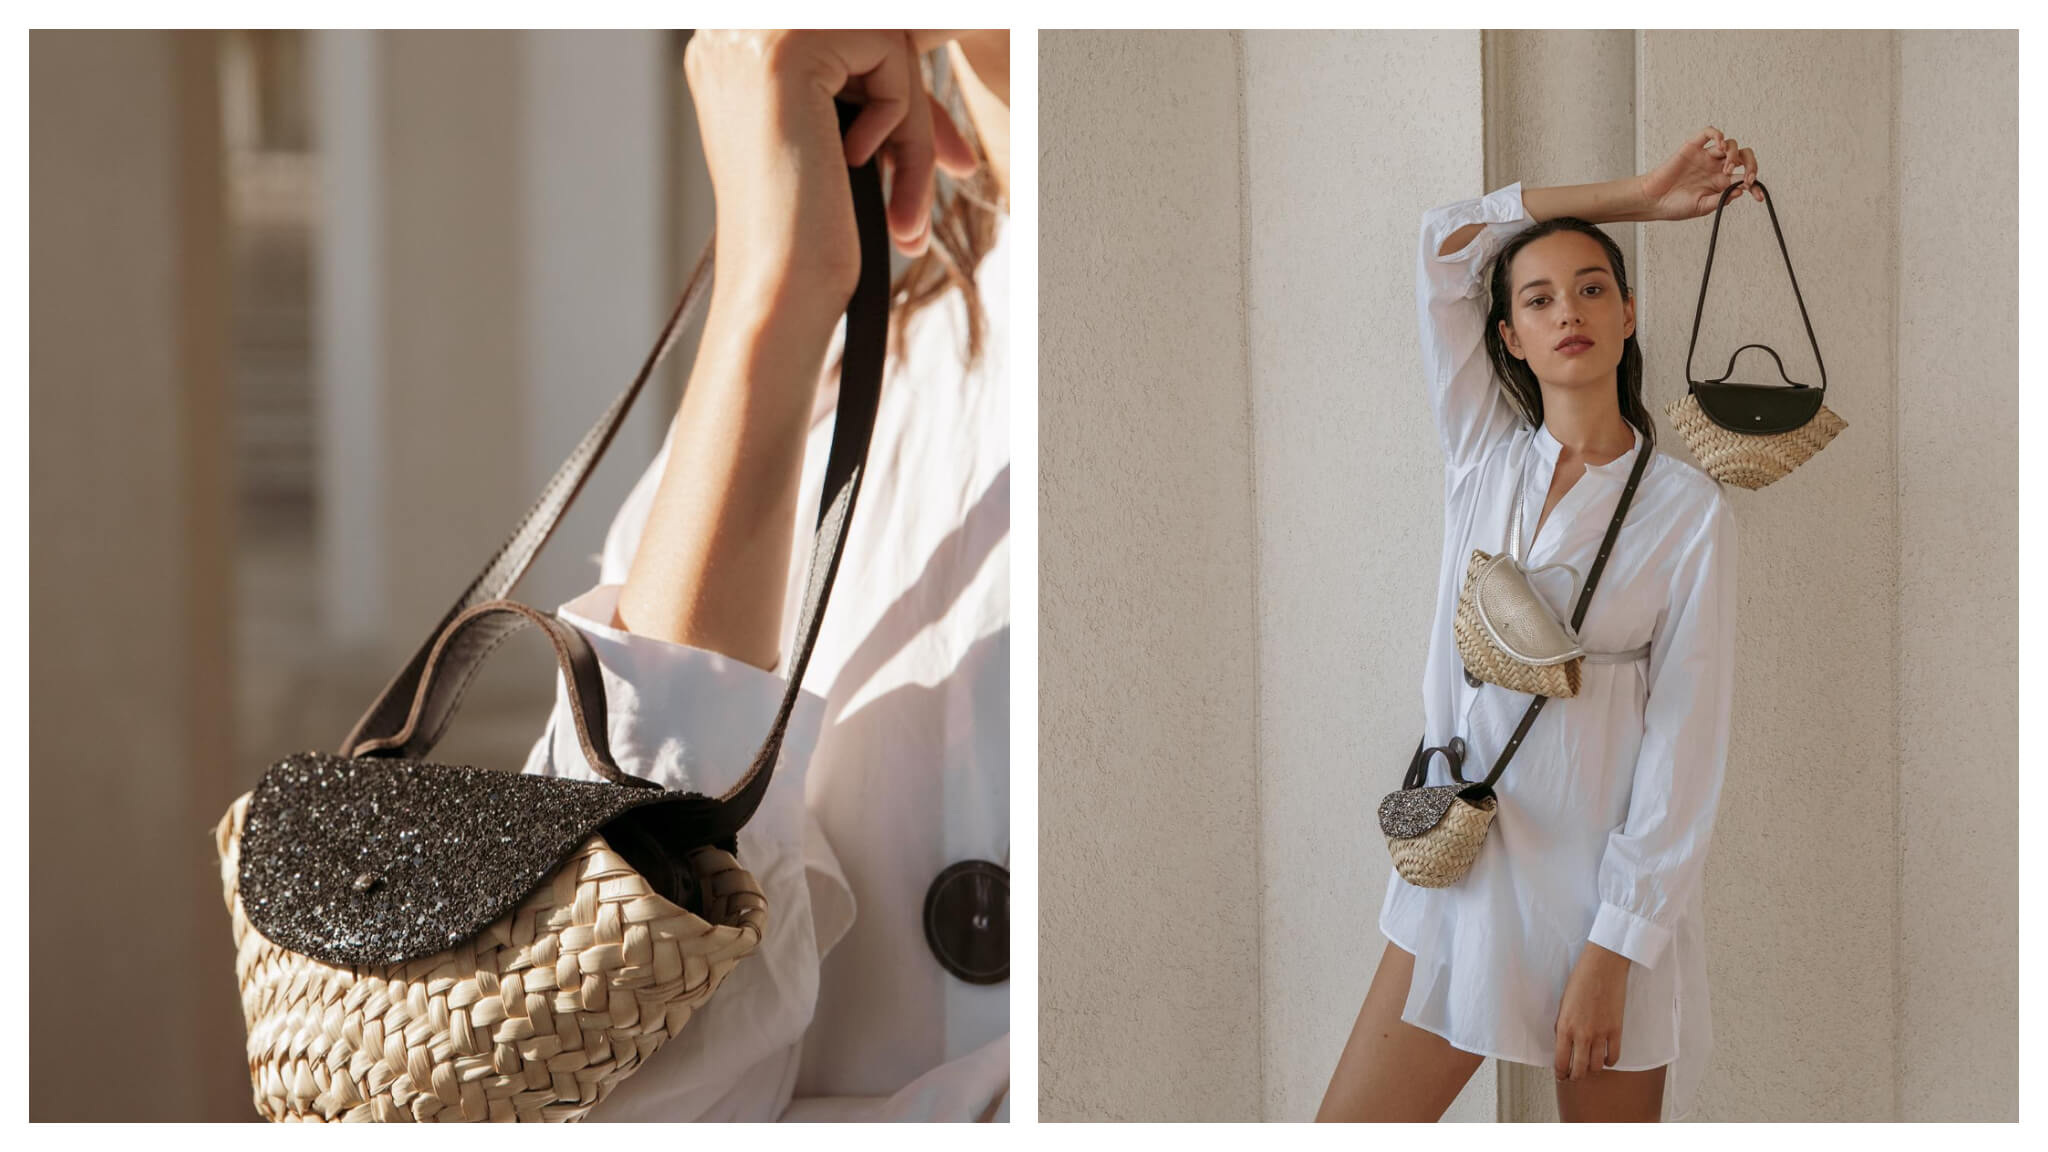 Left: A woman in a white dress holds a  wicker handbag with black detailing and straps from the brand Il était un fil, Right: A woman in a white dress models with three small wicker bags, each with different details, from the brand Il était un fil